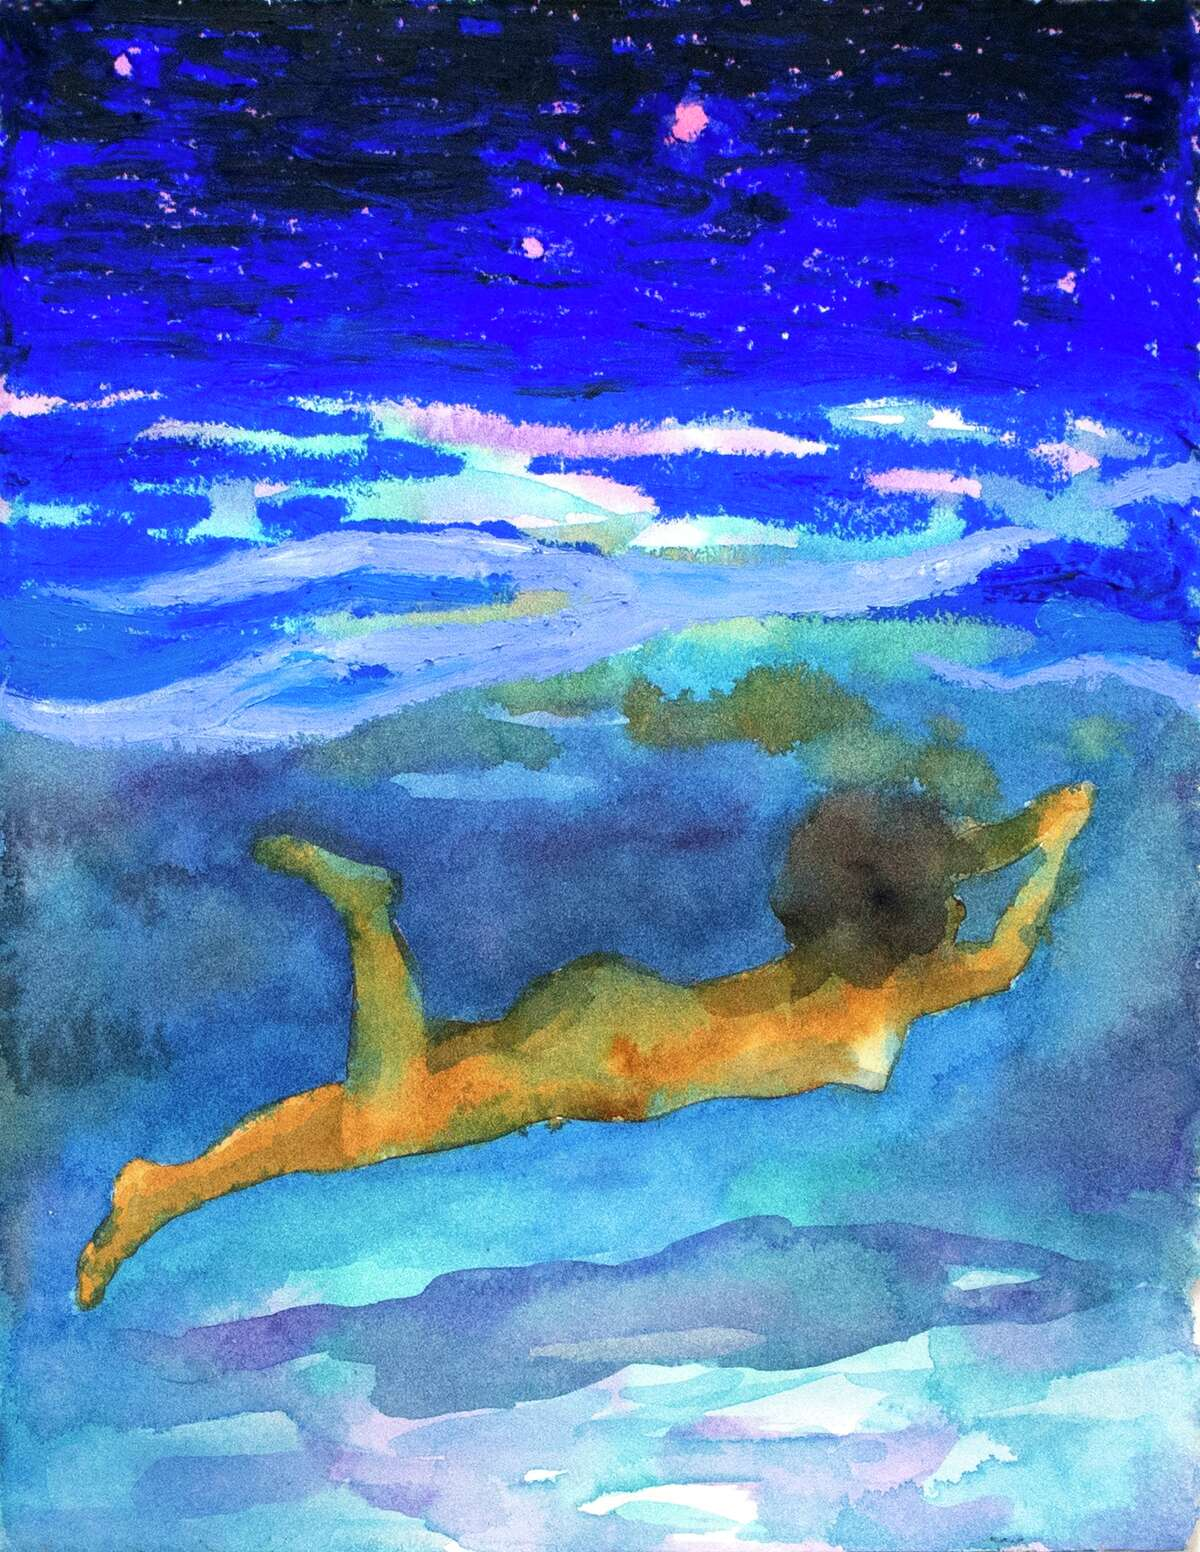 """""""Star"""" by Adrienne Elise Tarver will be on display from Sept. 8 through Jan. 2 at The Aldrich Contemporary Art Museum in Ridgefield."""